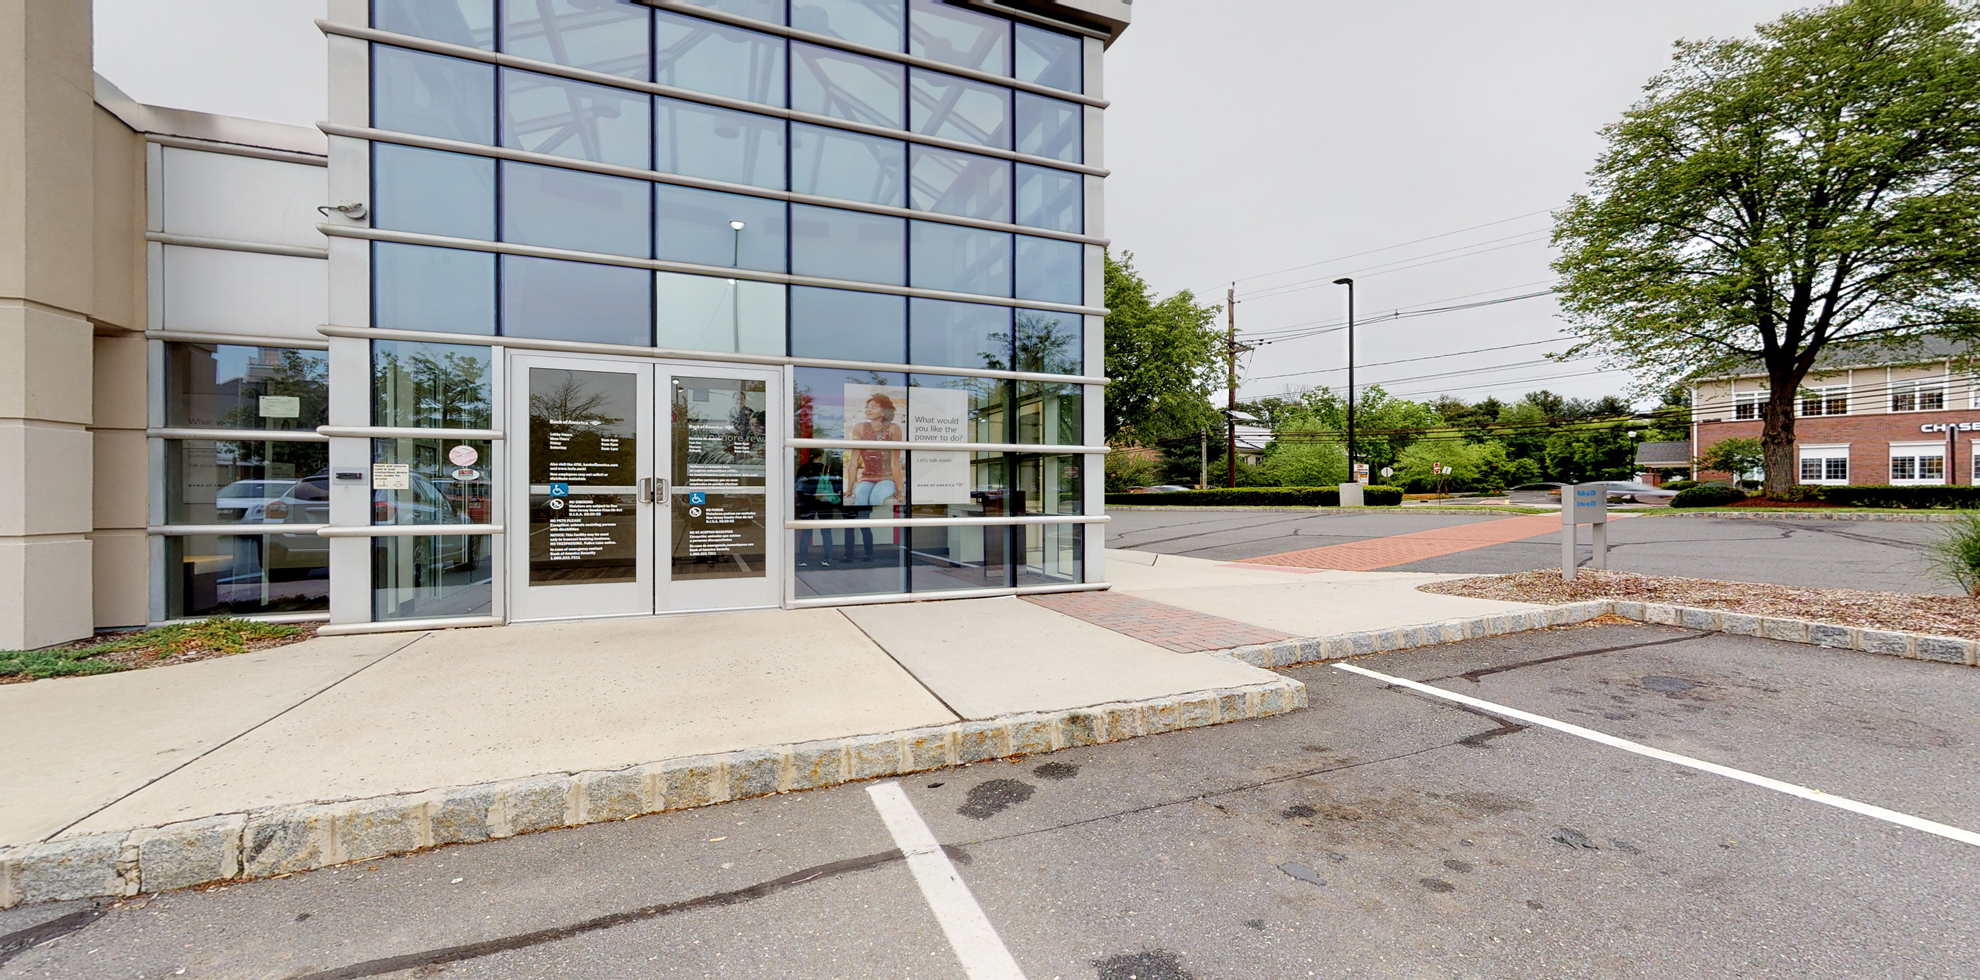 Bank of America financial center with drive-thru ATM   64 Princeton Hightstown Rd, Princeton Junction, NJ 08550